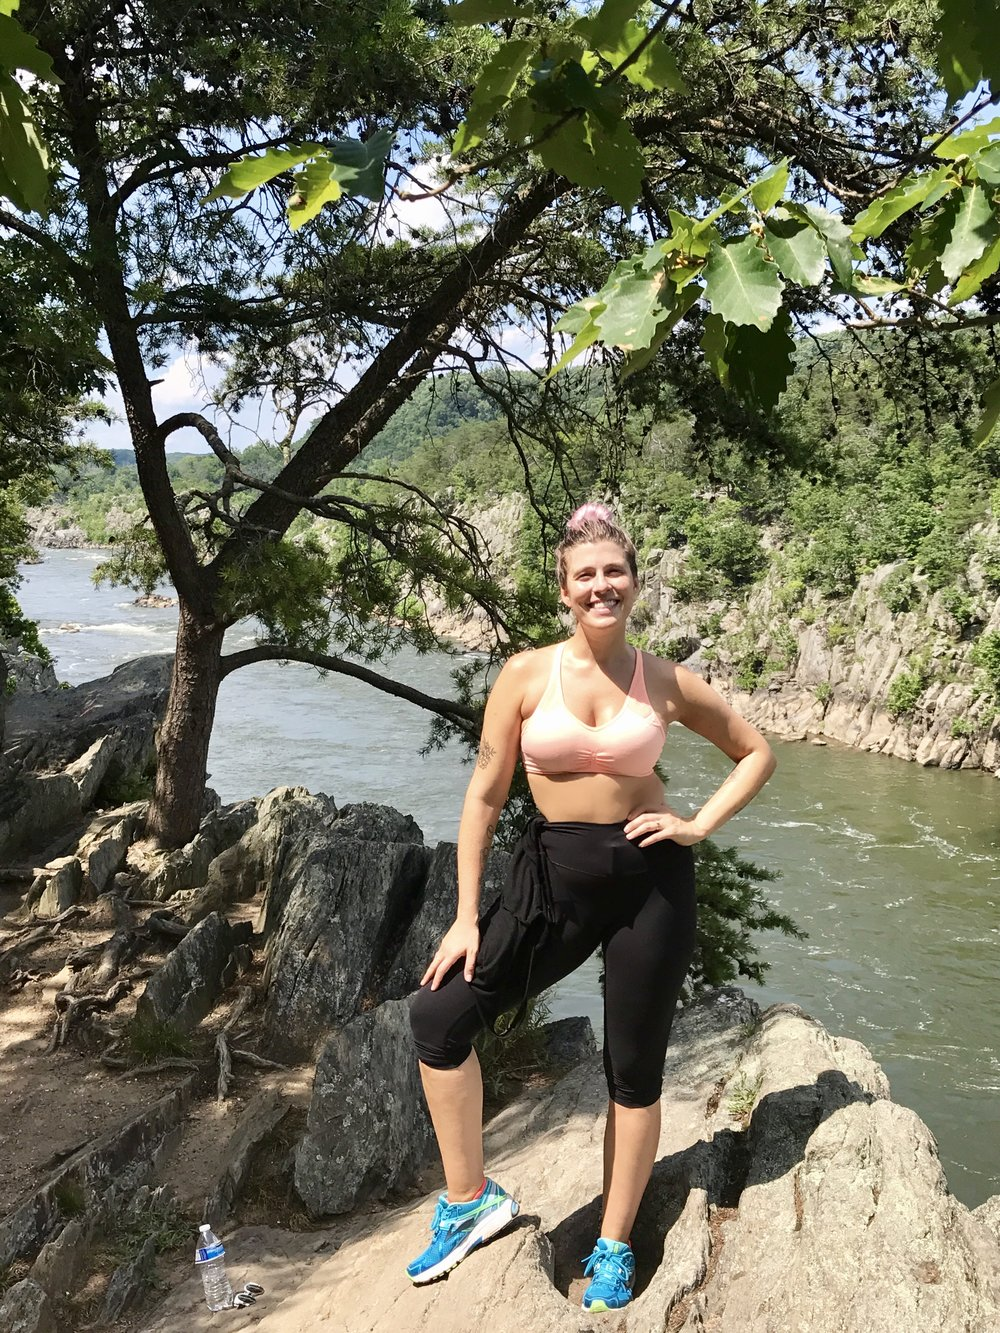 Hiking Great Falls Park in Northern Virginia